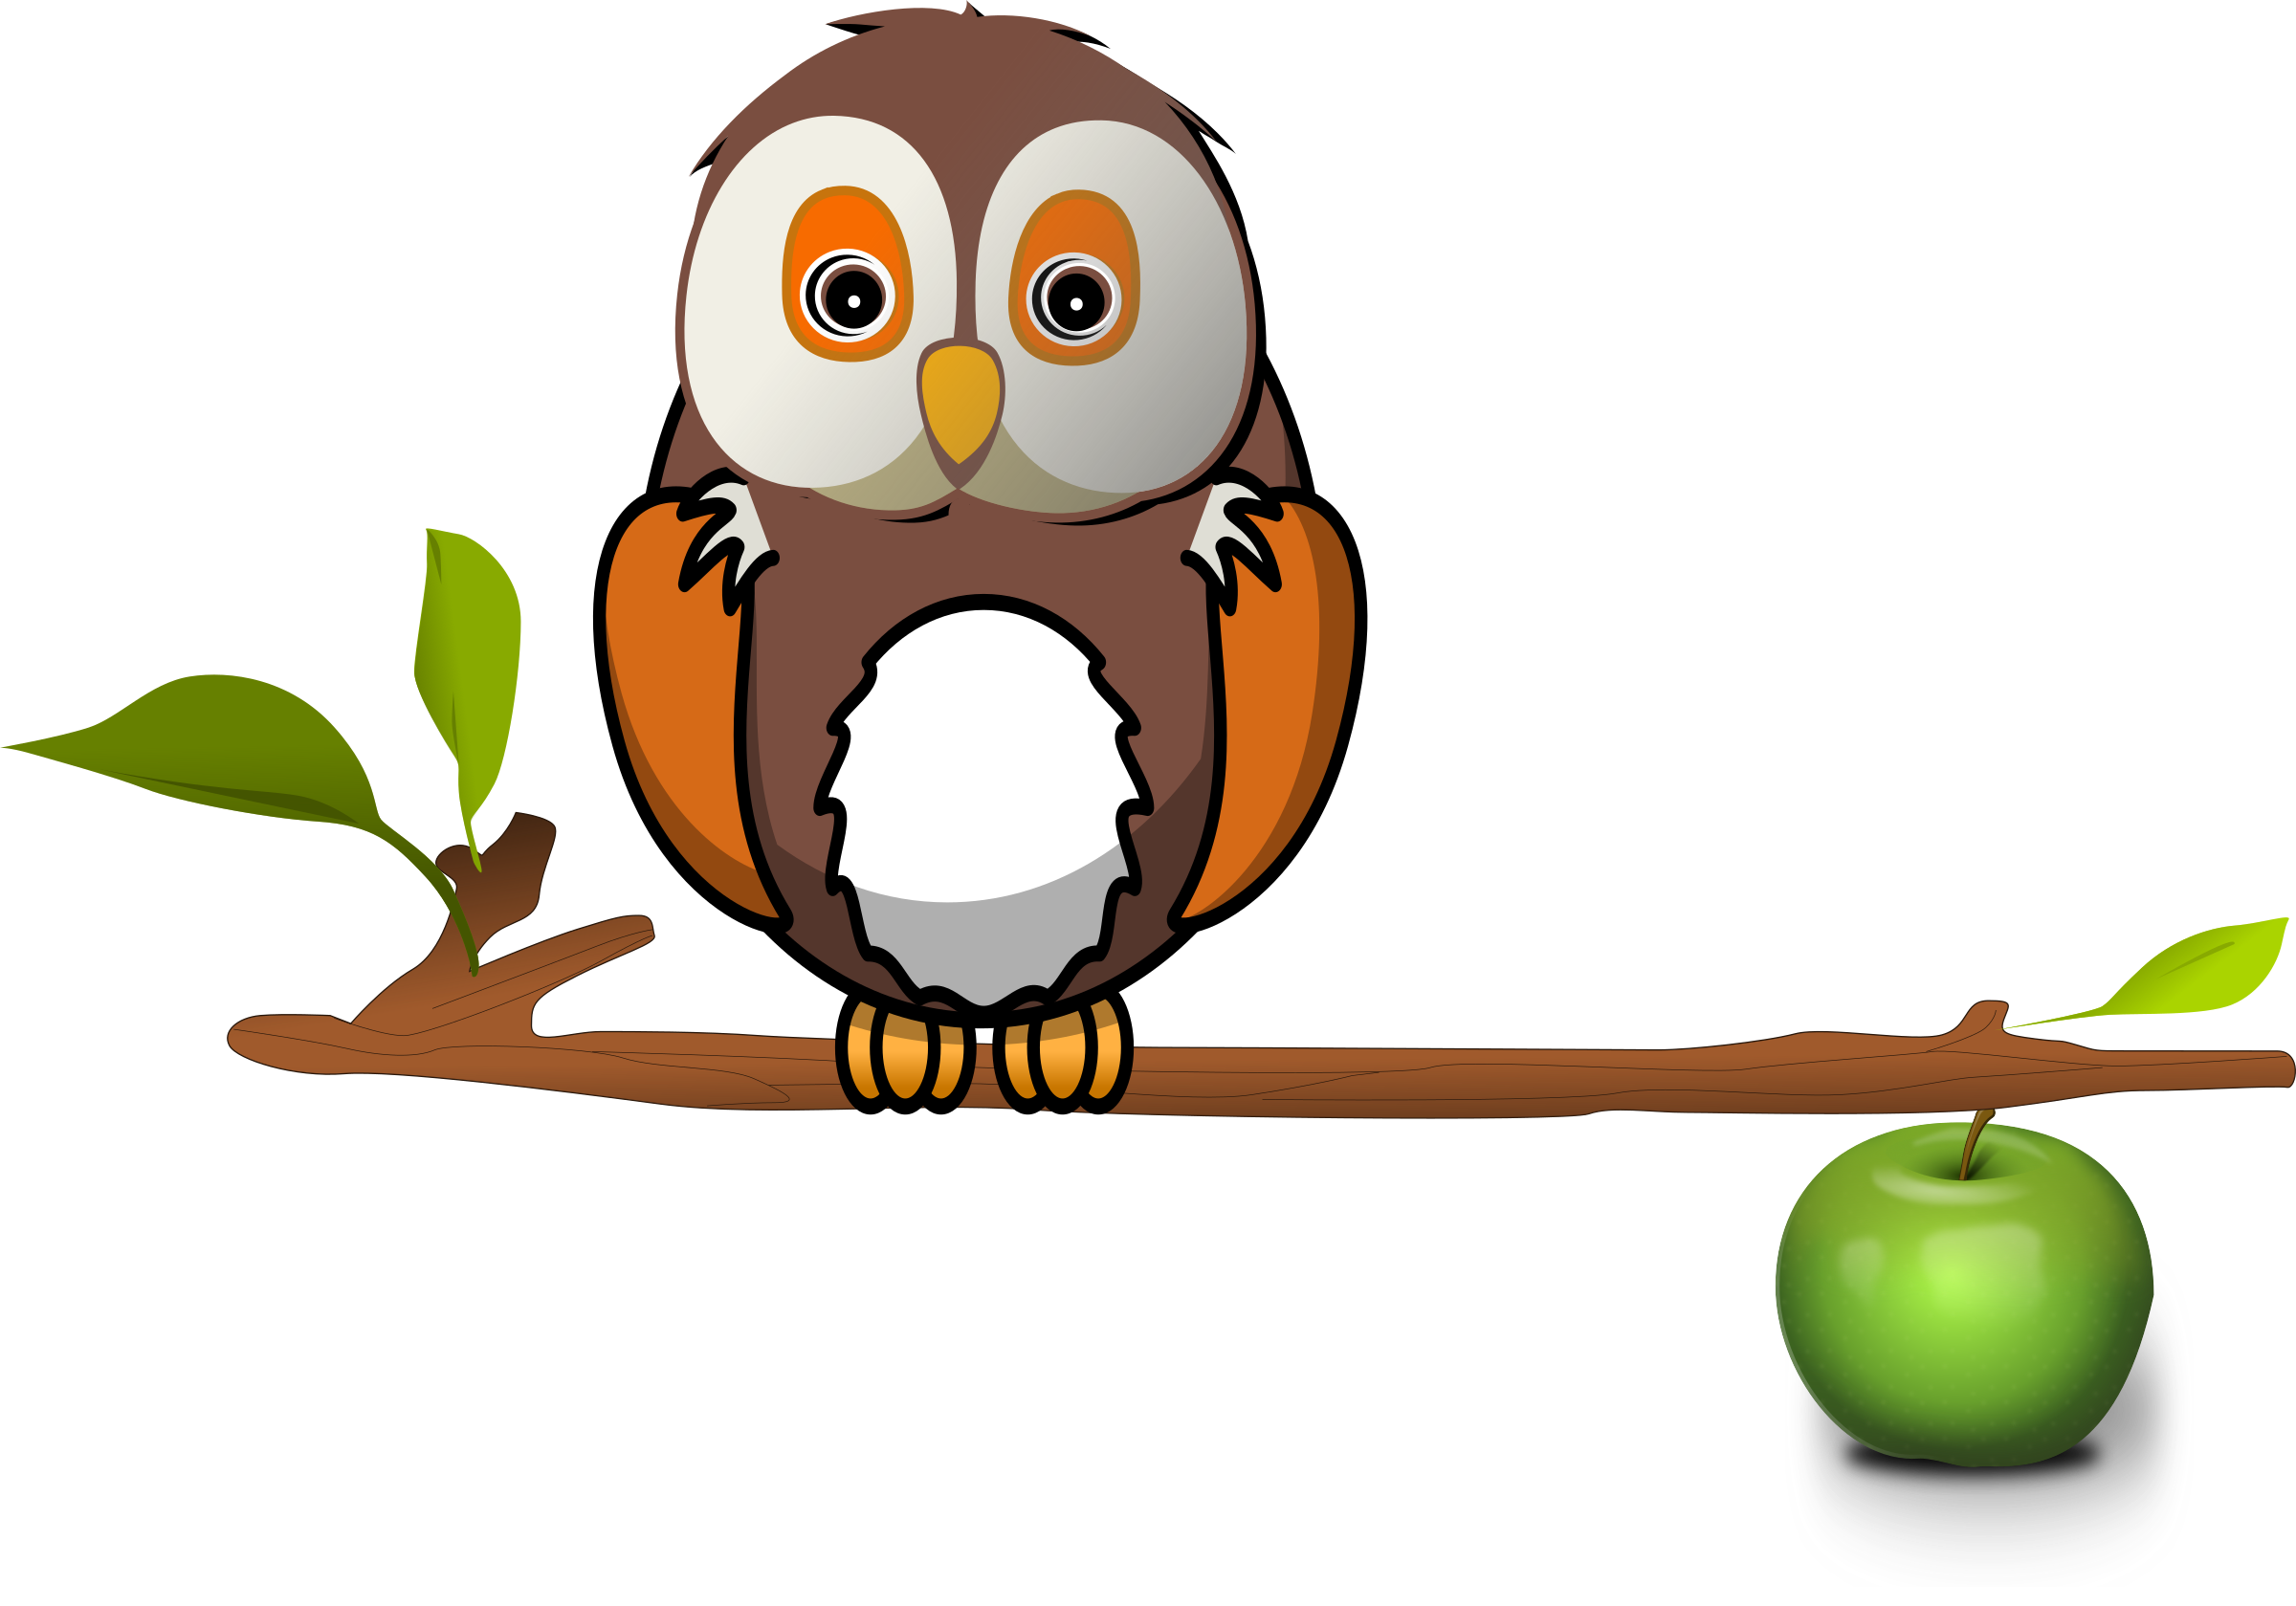 Clipart of owl with apple clipart royalty free library Clipart - Owl on branch clipart royalty free library